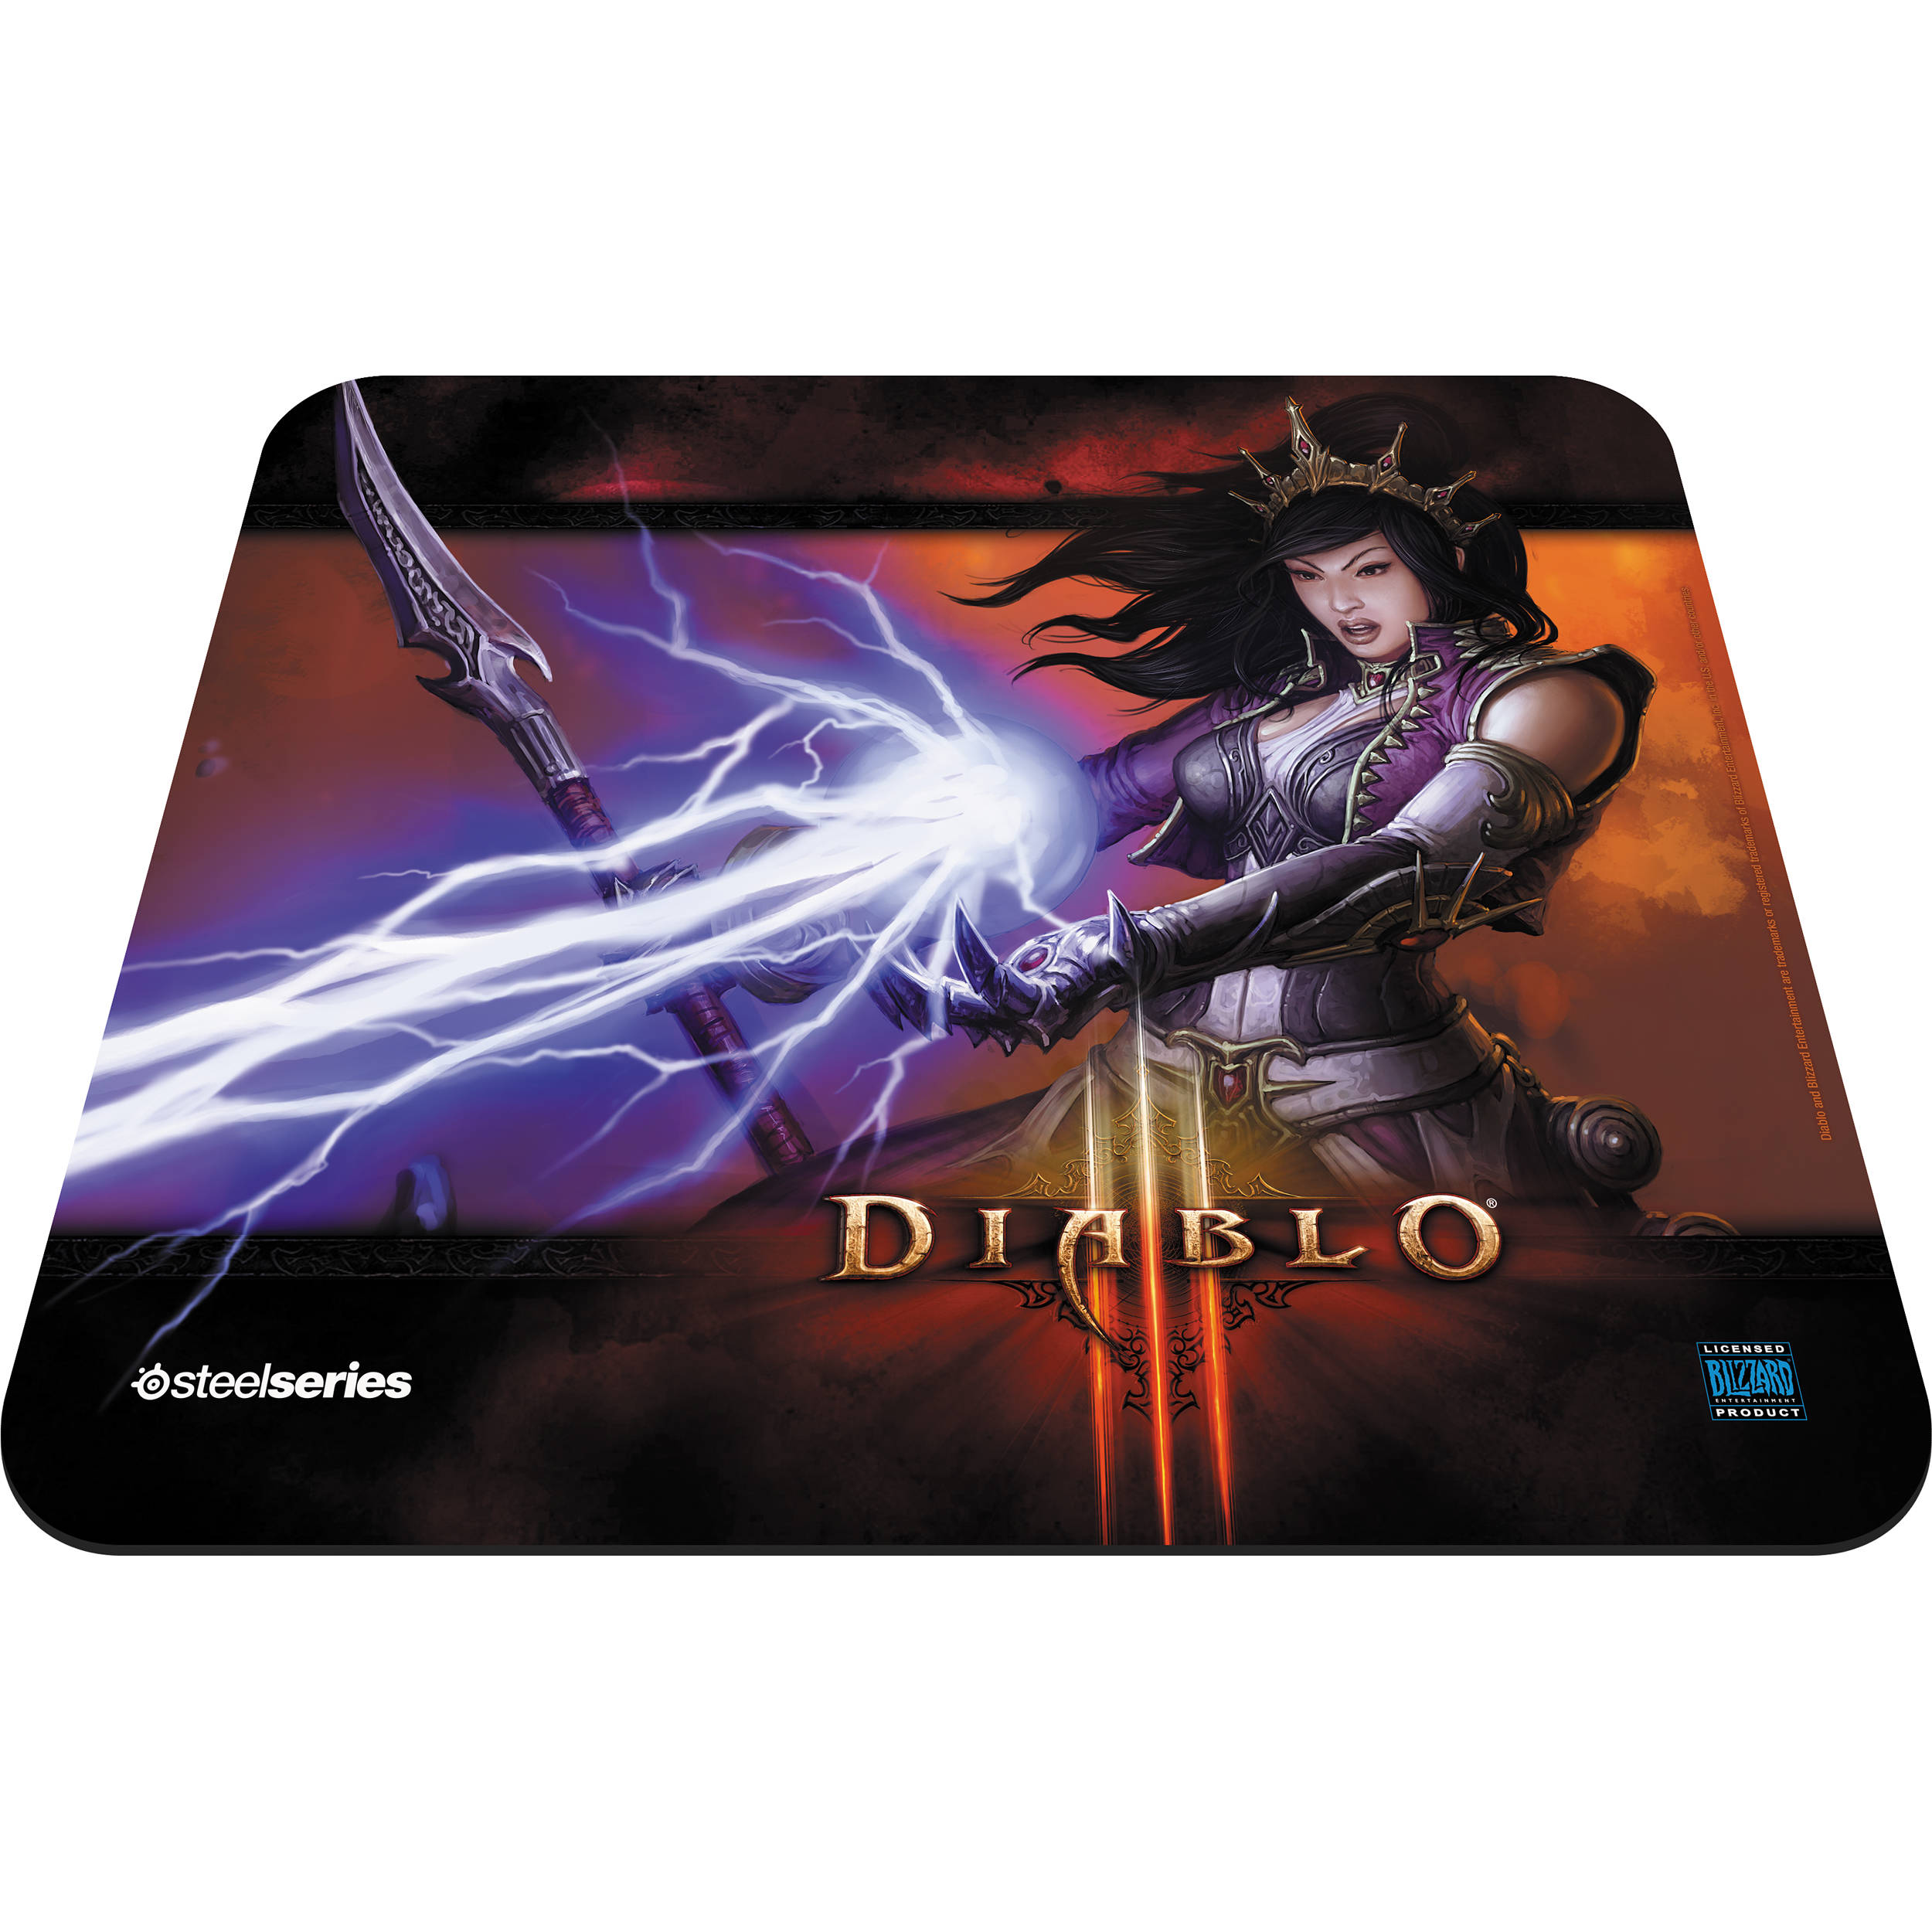 Steelseries Qck Diablo Iii Gaming Mouse Pad 67236 Bh Photo Mousepad Black Wizard Edition